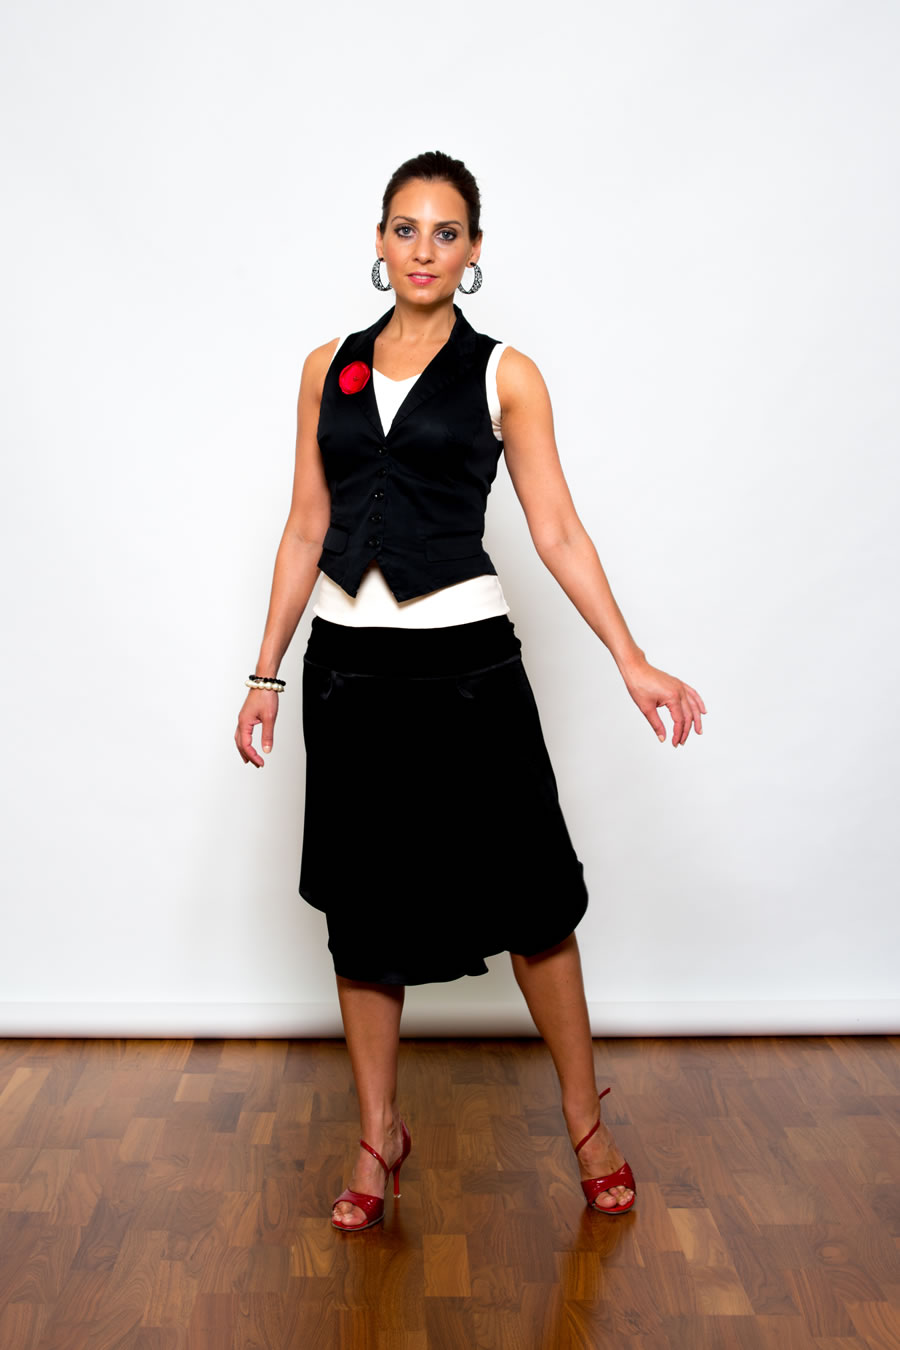 Tango Clothing, Dresses & Fashion Made In The UK